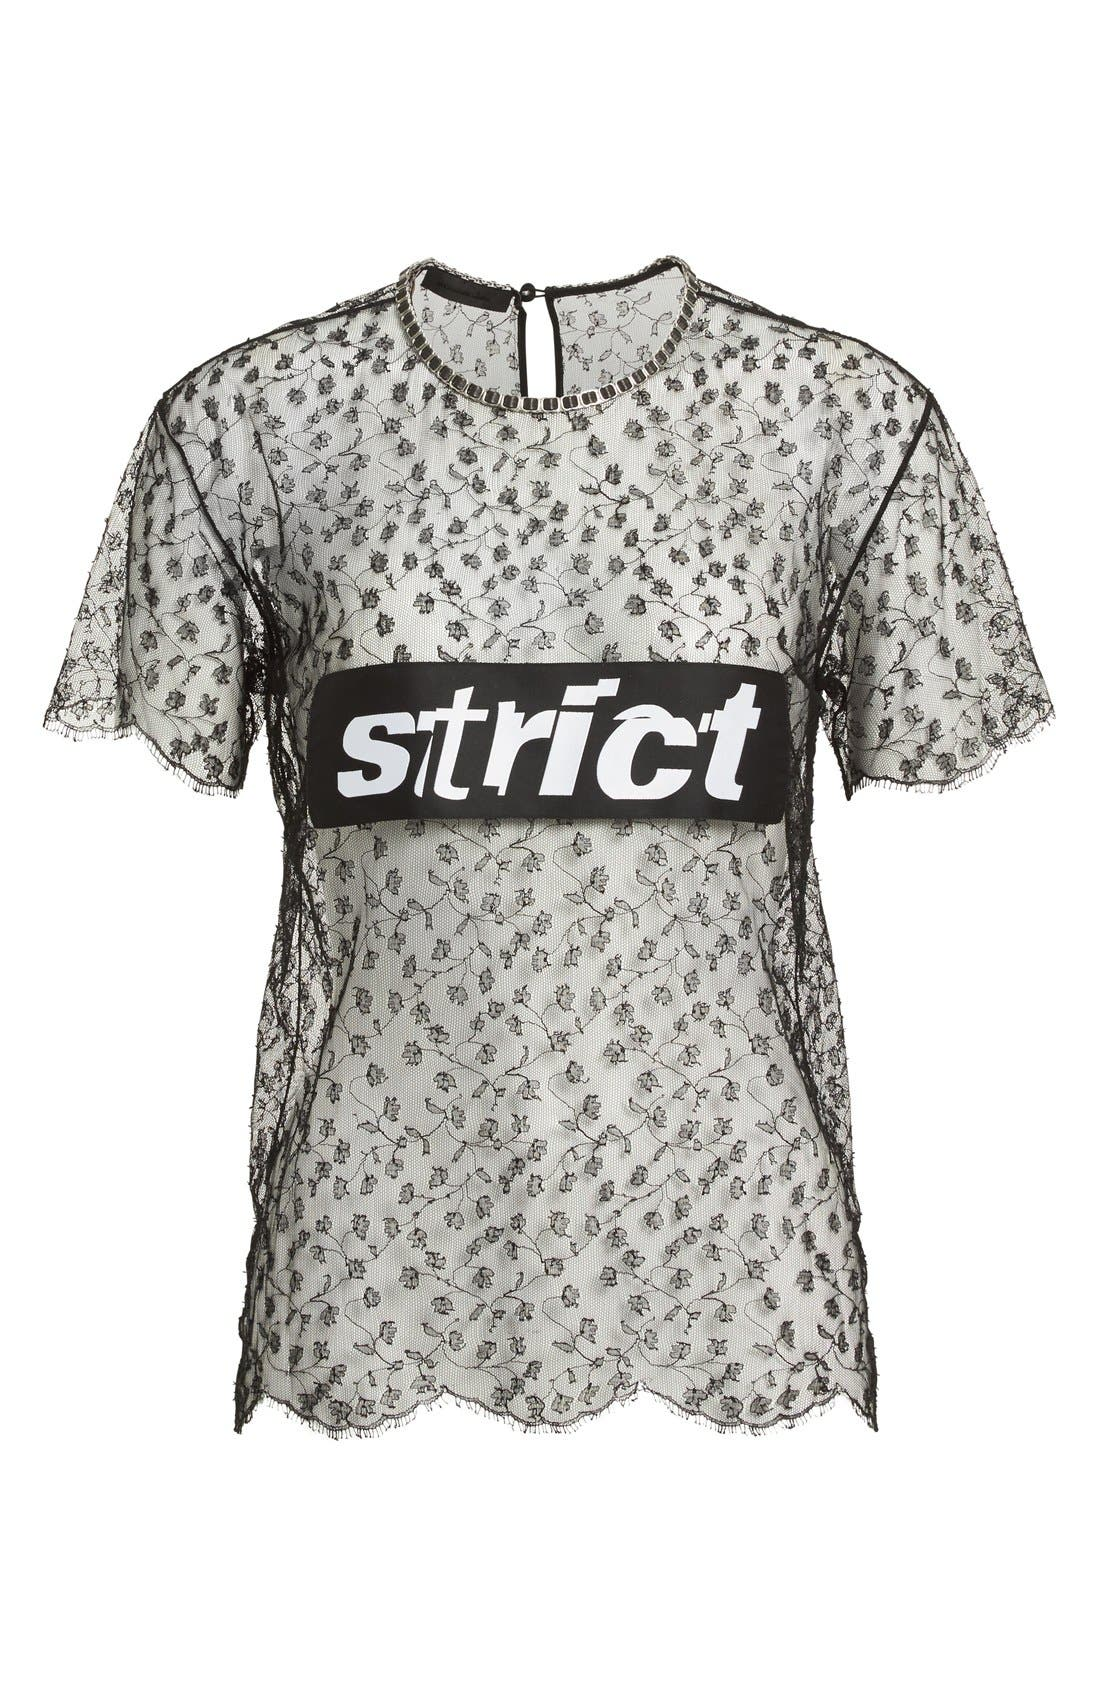 Alternate Image 1 Selected - Alexander Wang 'Strict' Lace Tee